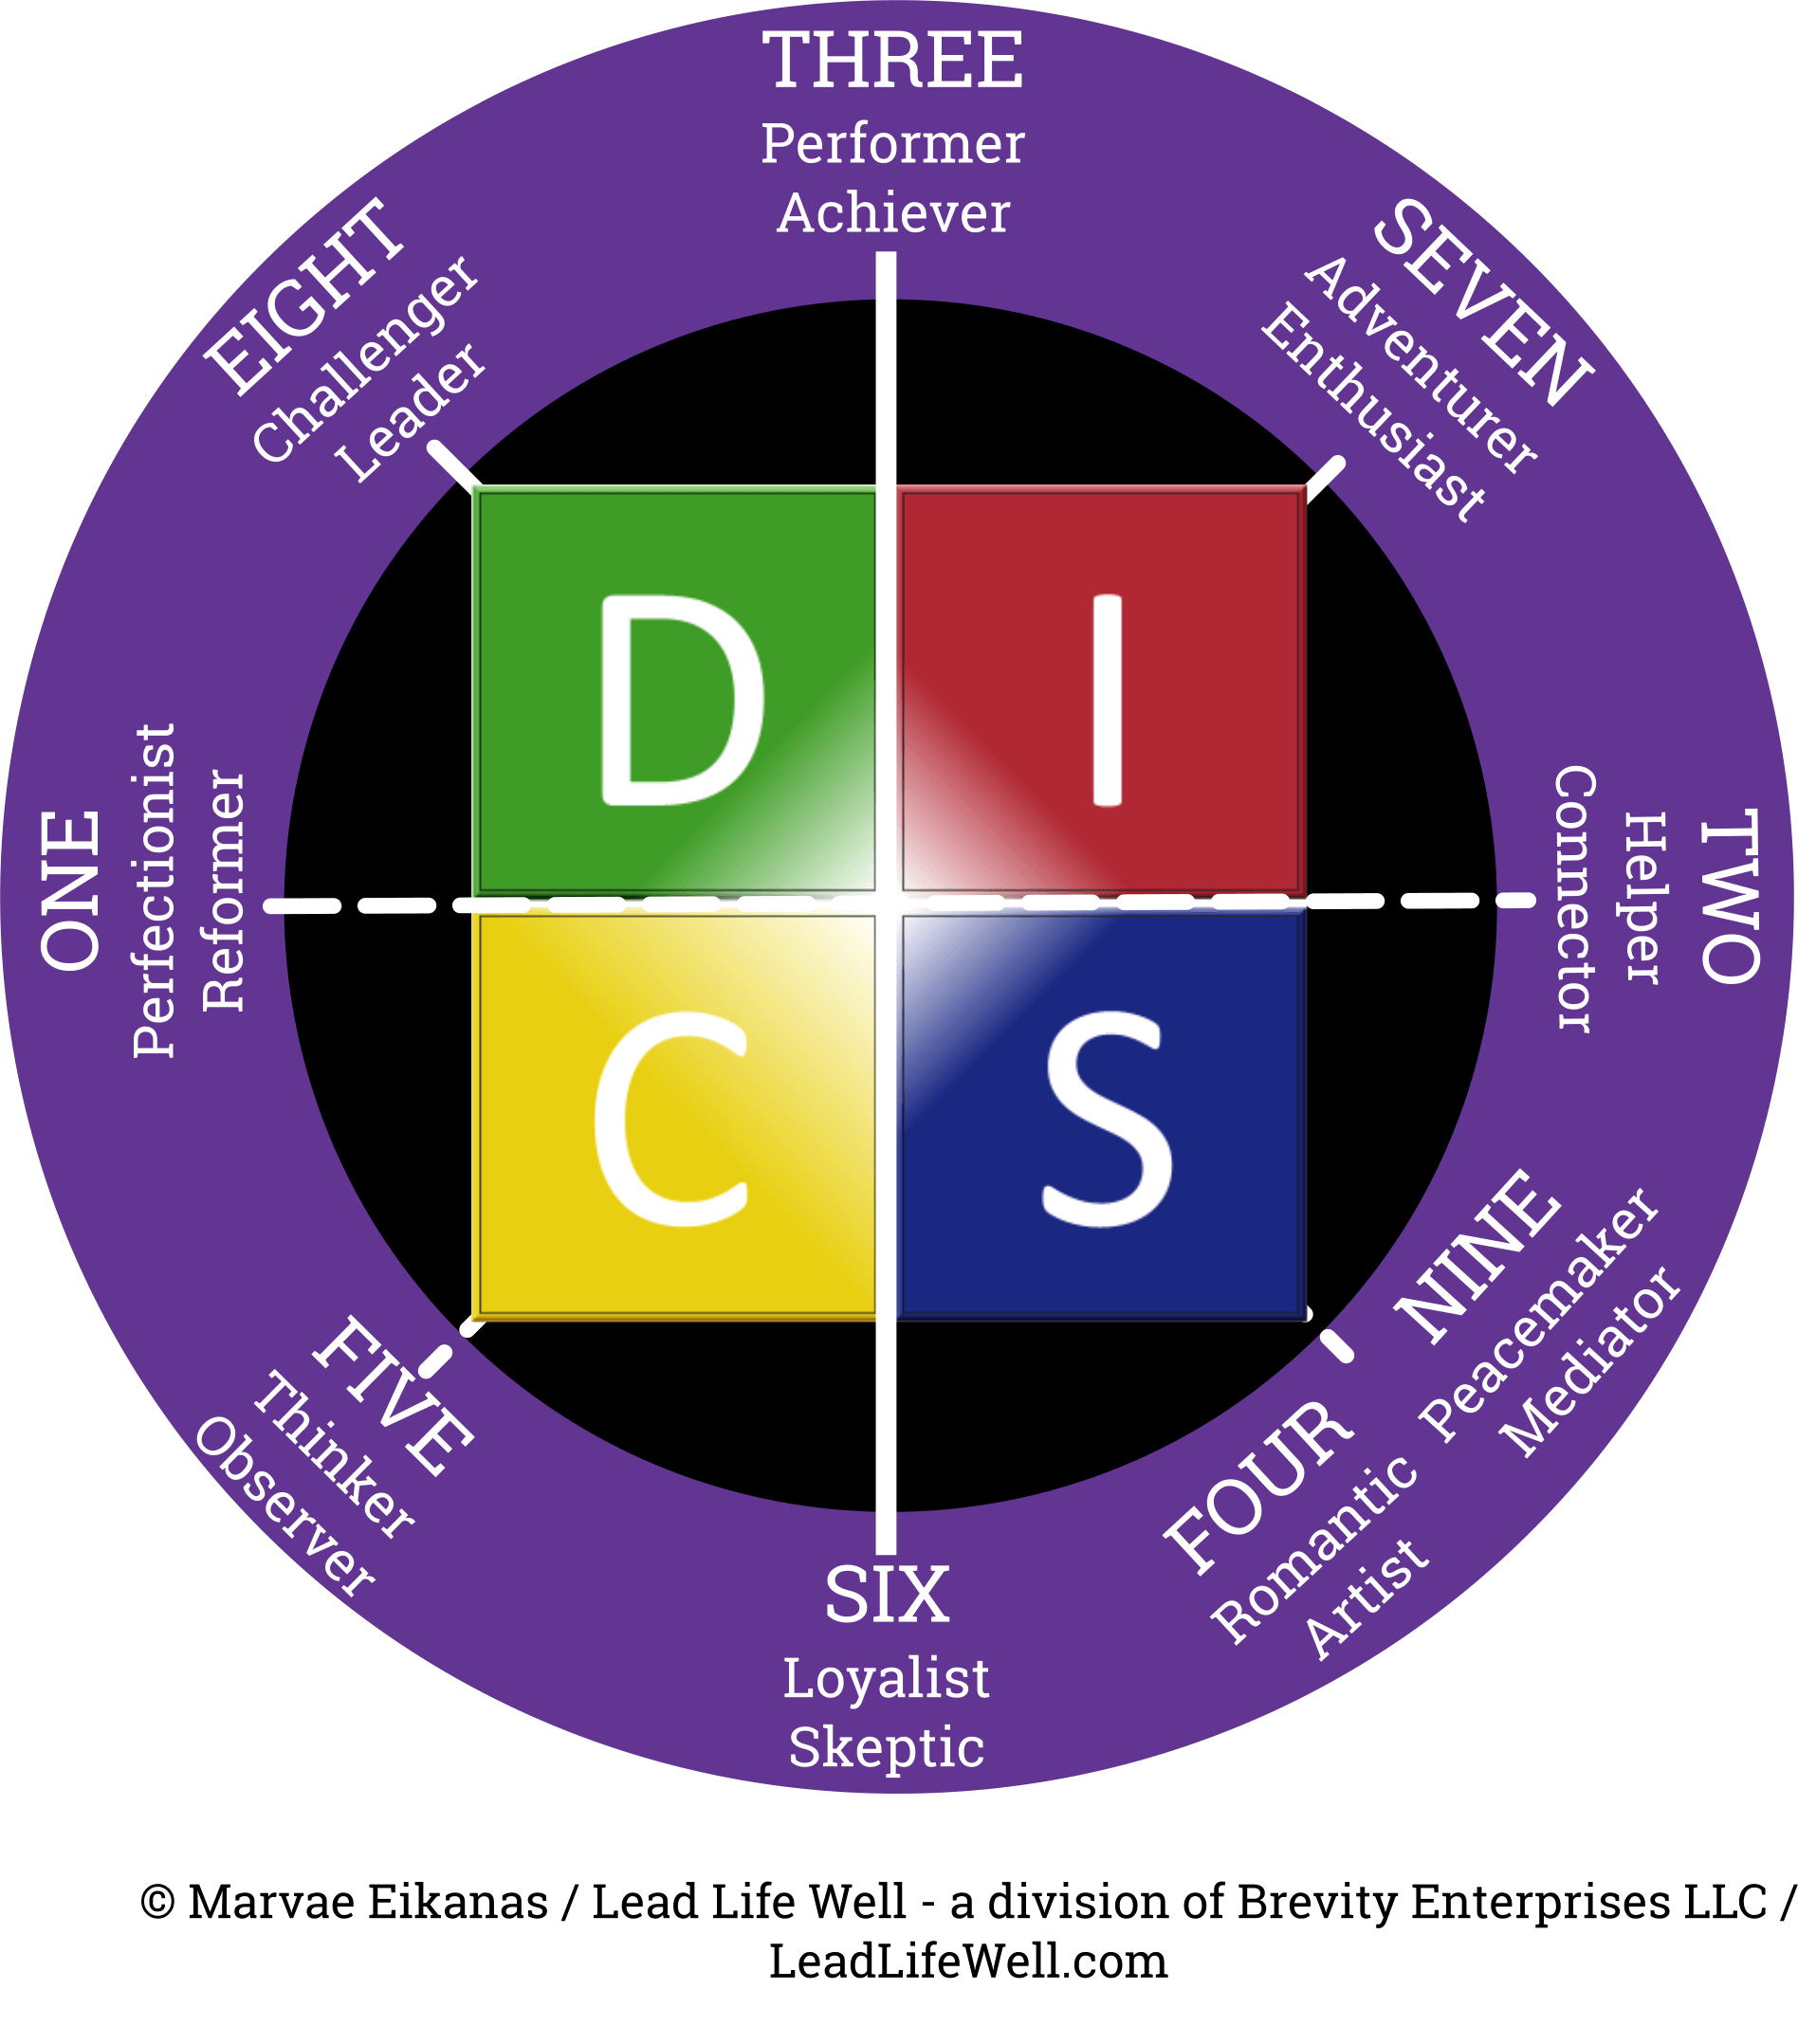 Personality - DISC & Enneagram